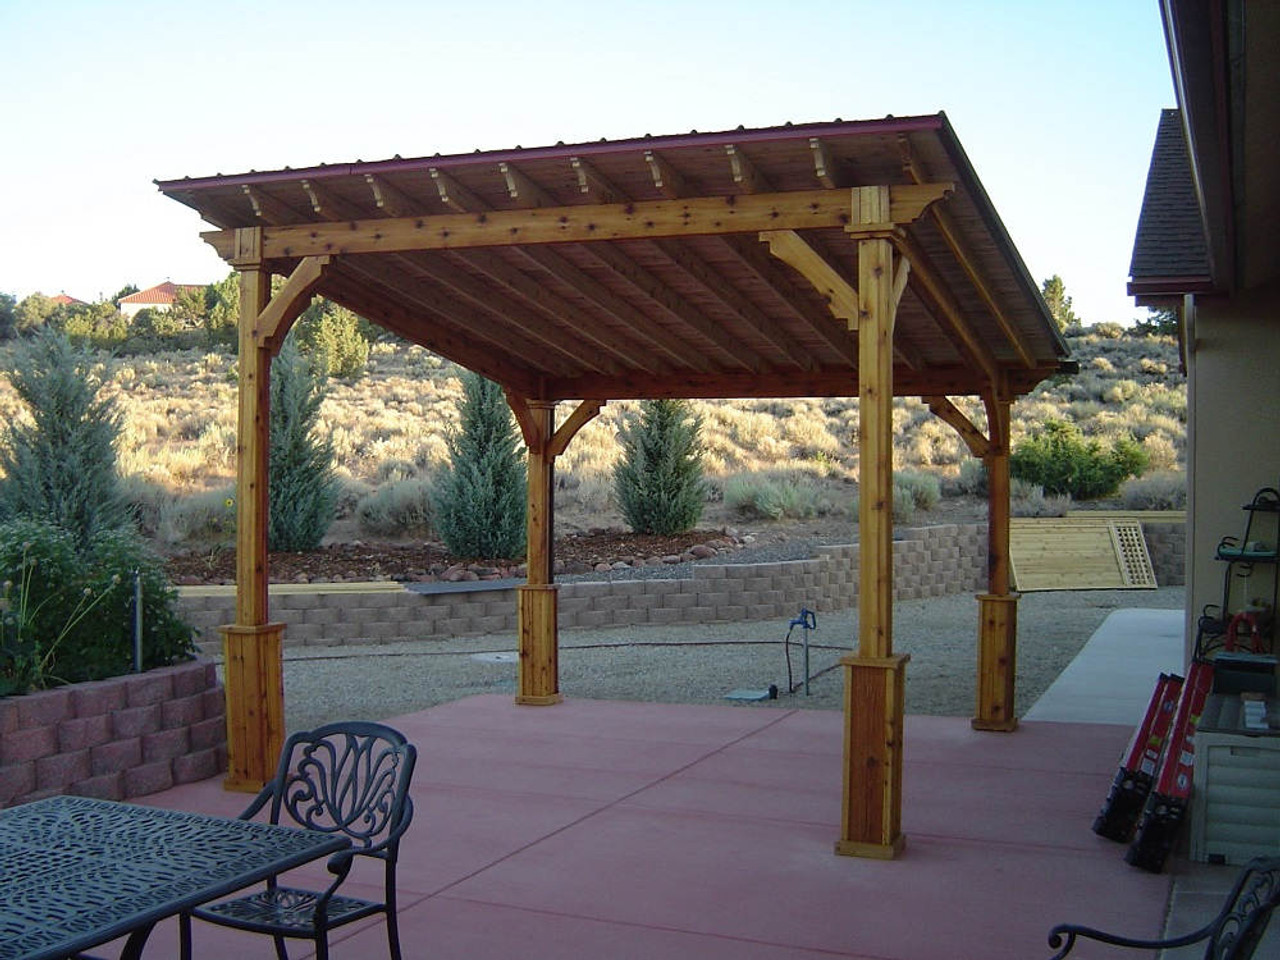 12x12 Lean-To Cedar Pergola Kit - Gardnerville, Nevada